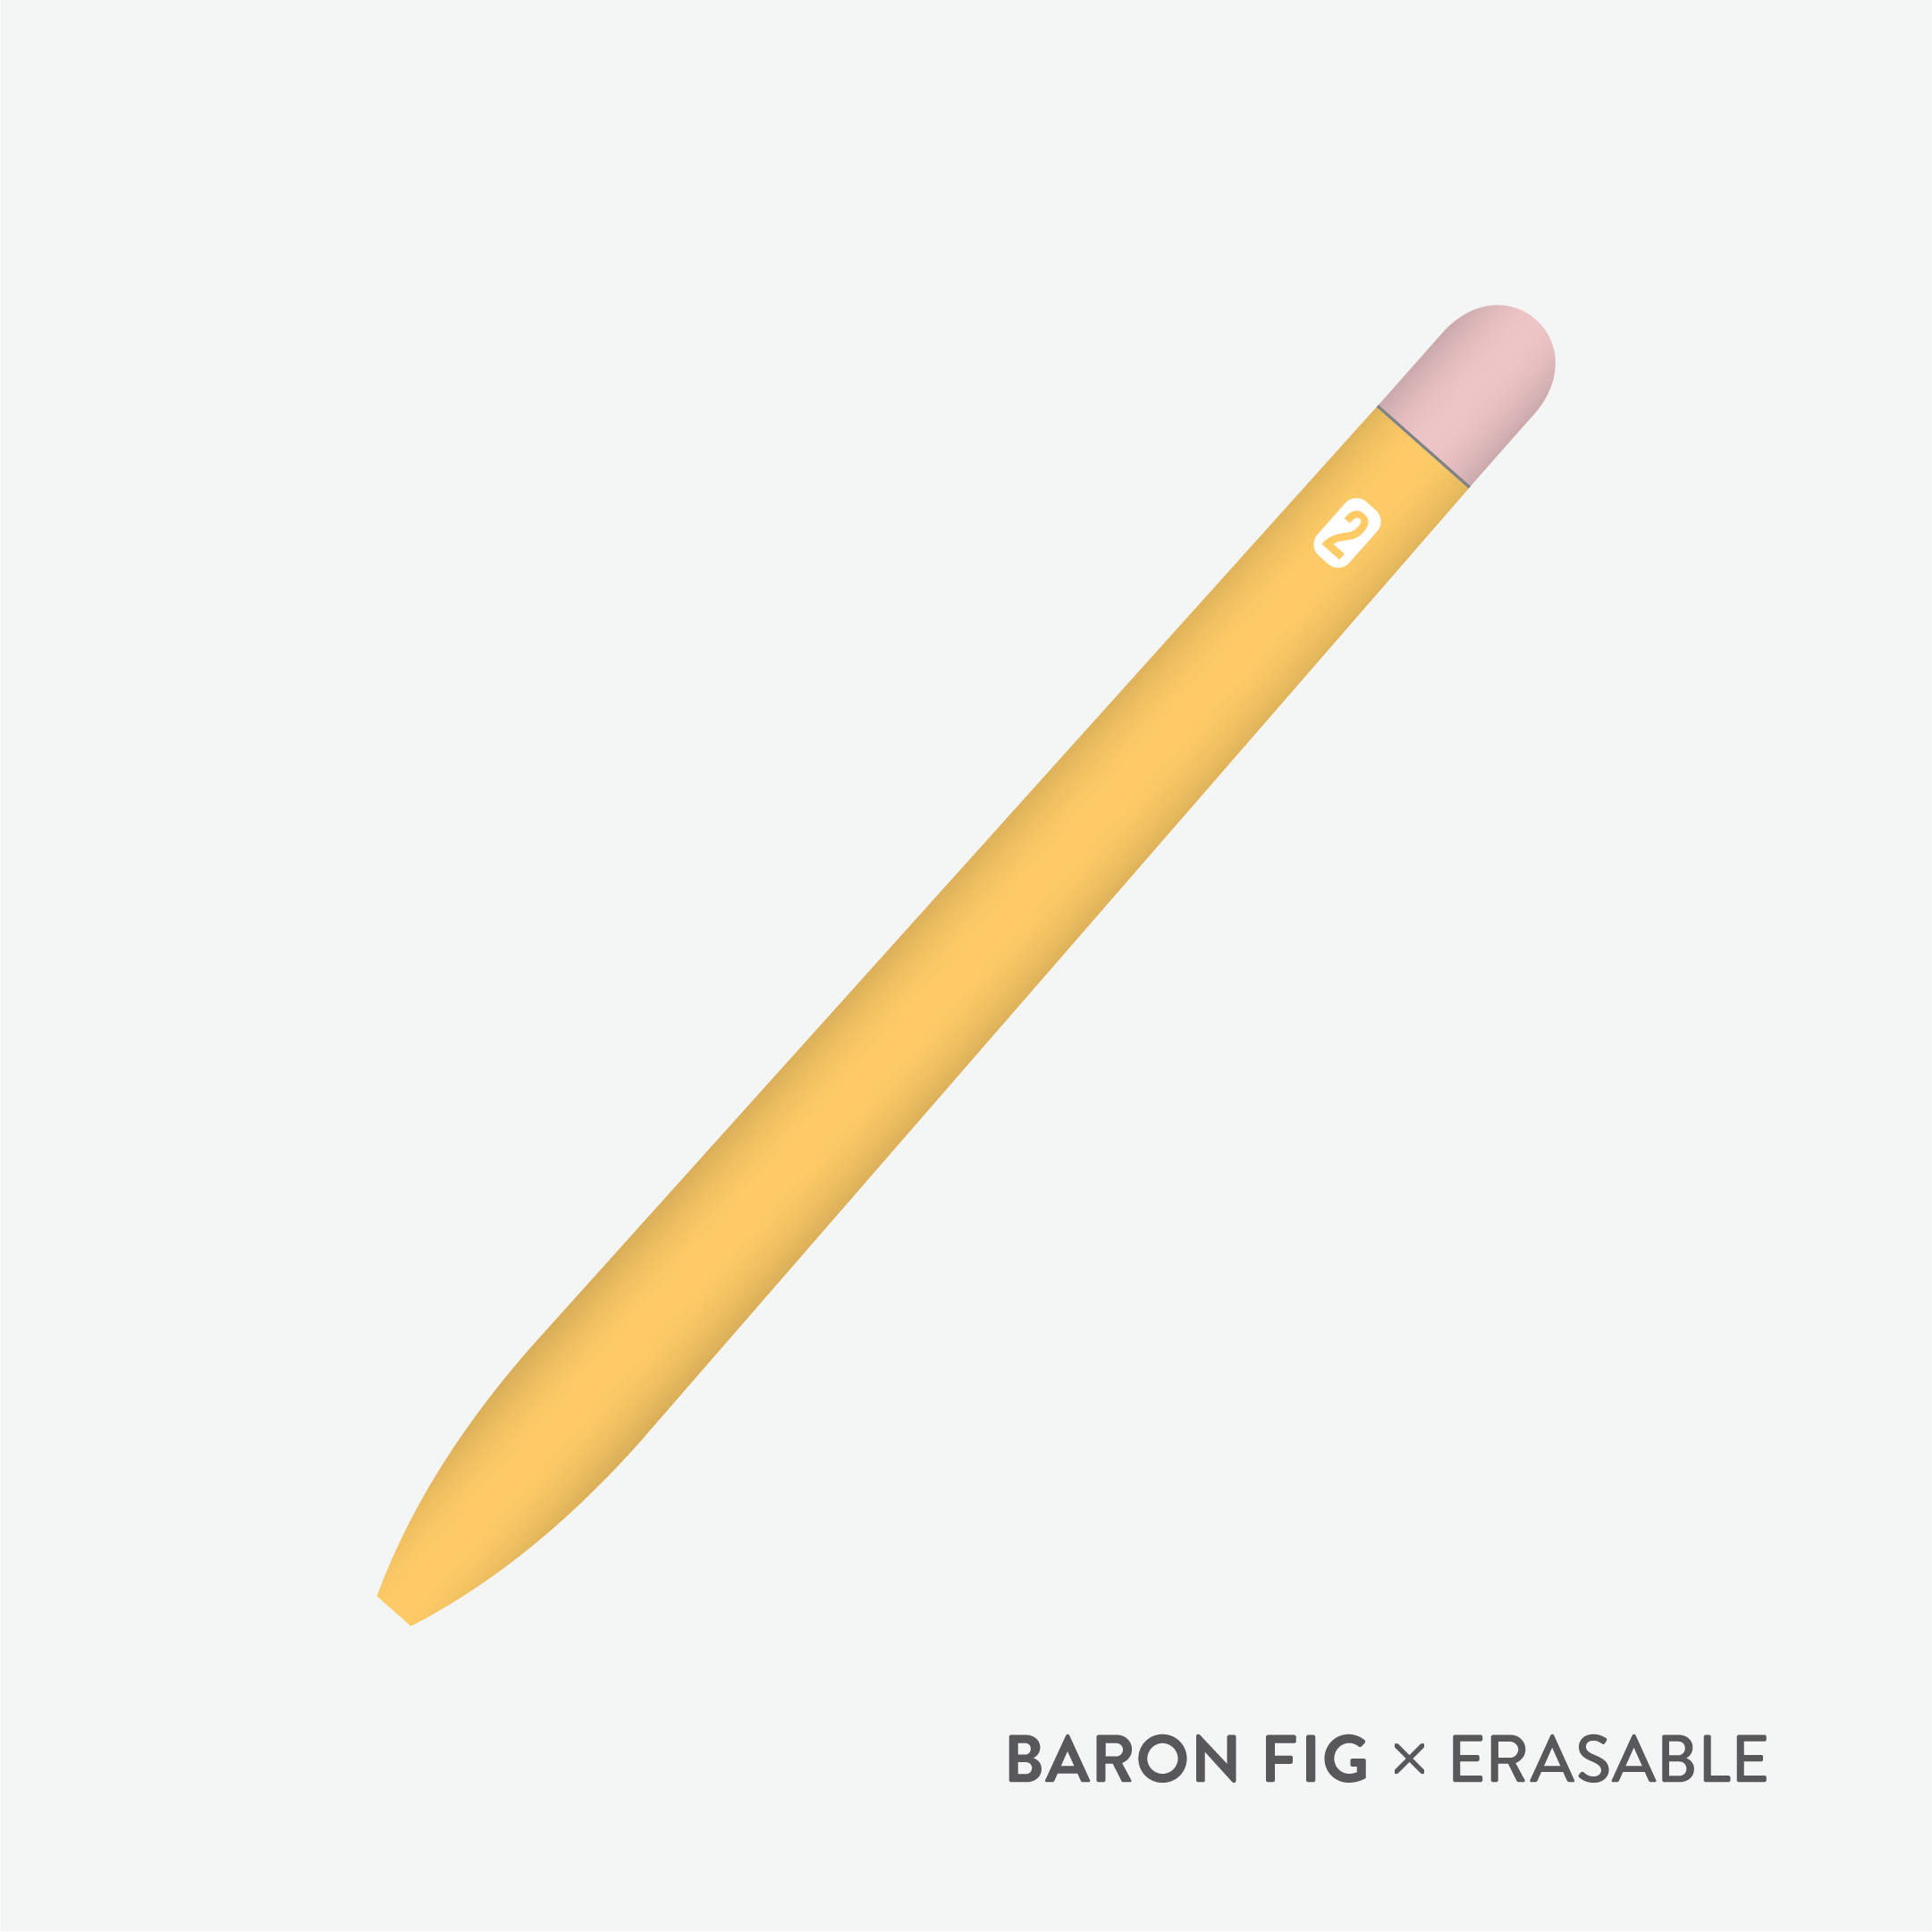 The Baron Fig X Erasable Number 2 Squire Pen